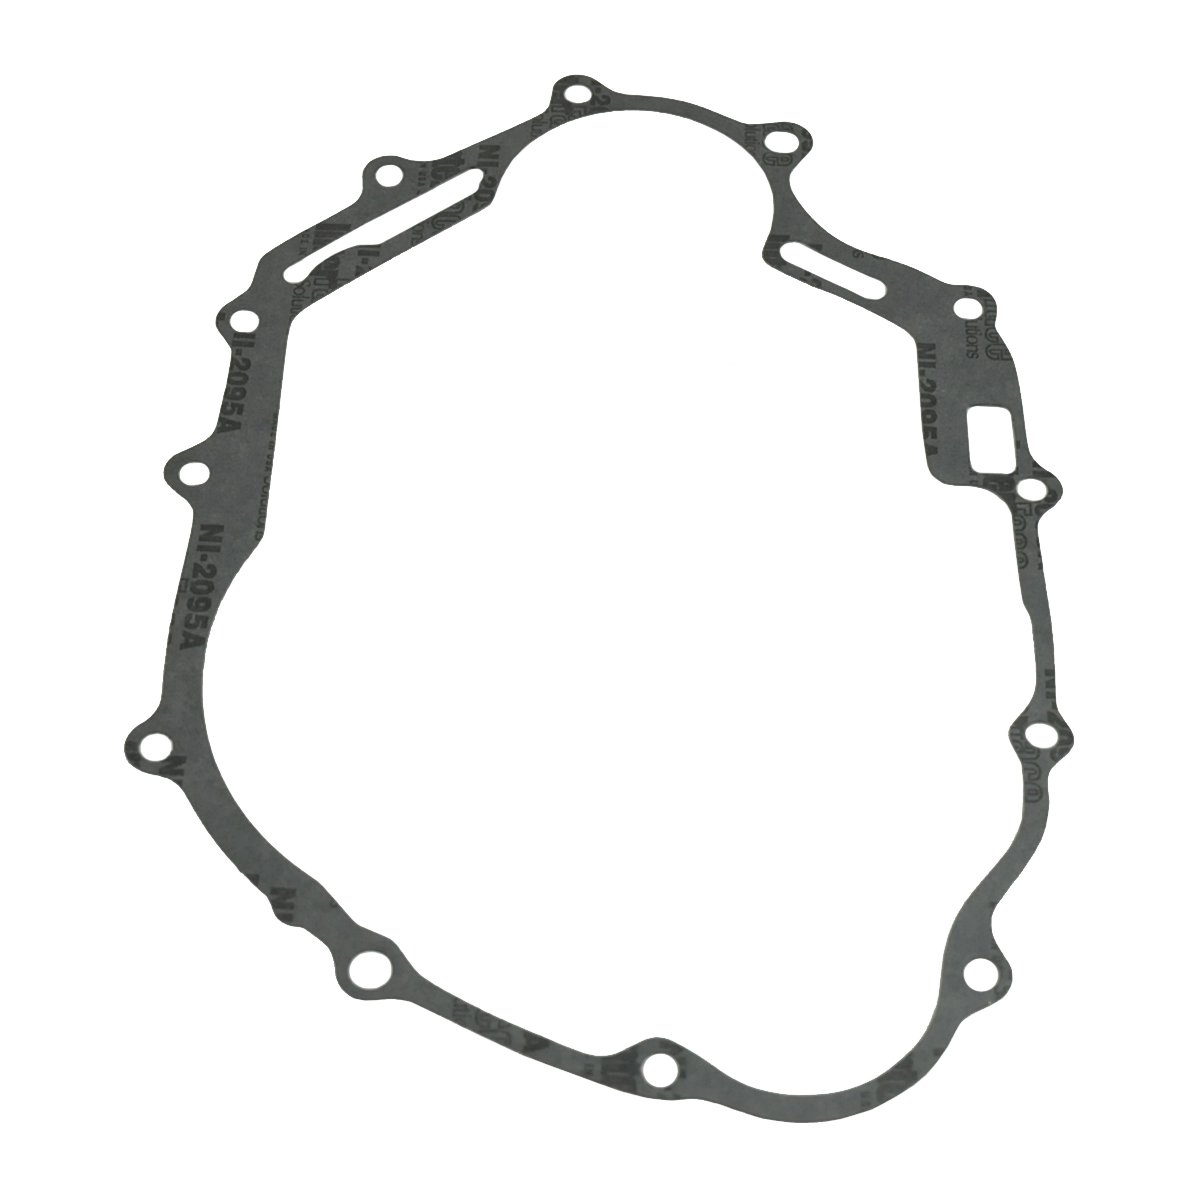 Namura, NX-10151CG, Clutch Cover Gasket Right Crankcase Cover 2006-2017 Honda CRF150F by Namura